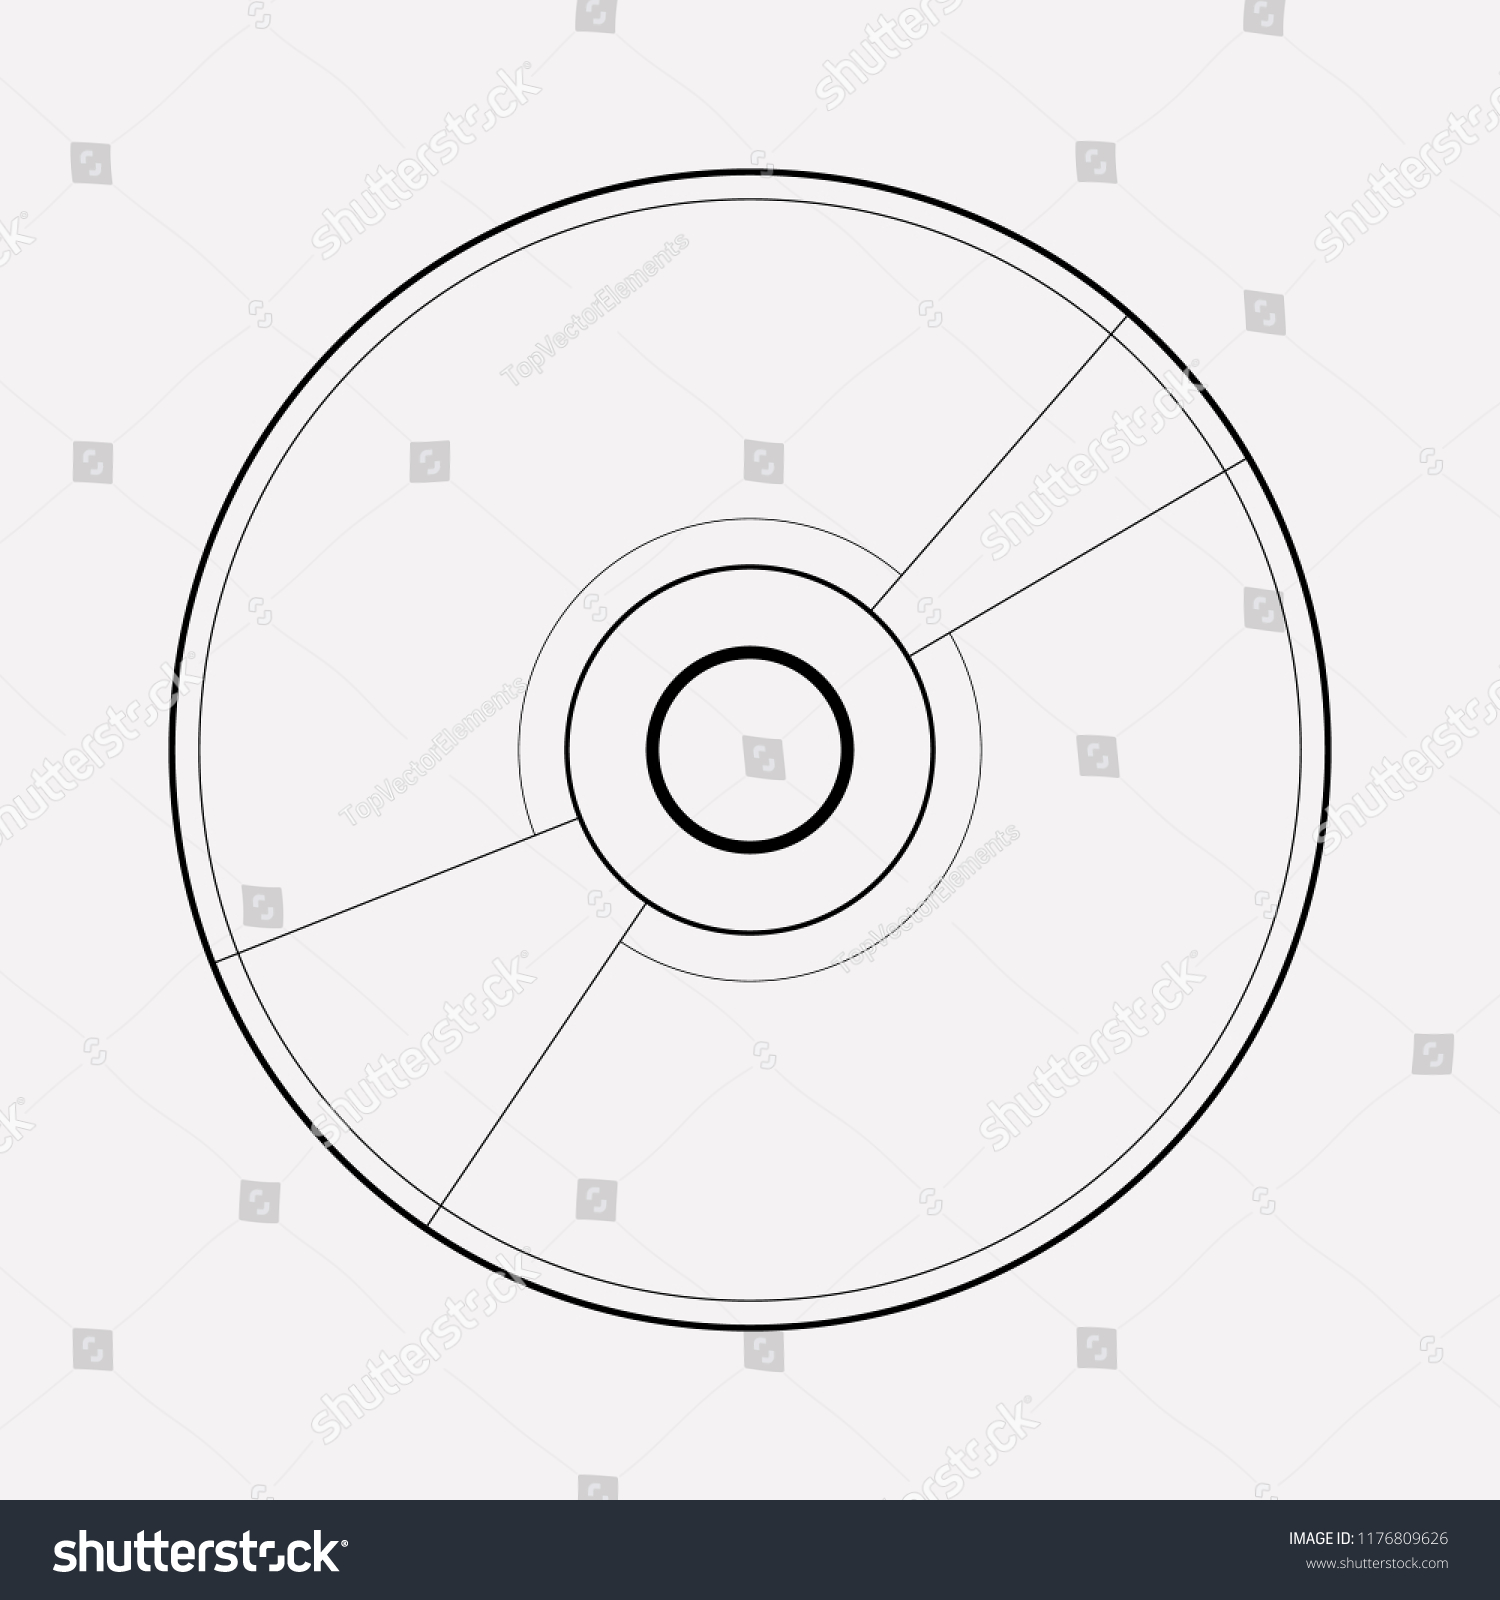 hight resolution of cd disk icon line element vector illustration of cd disk icon line isolated on clean